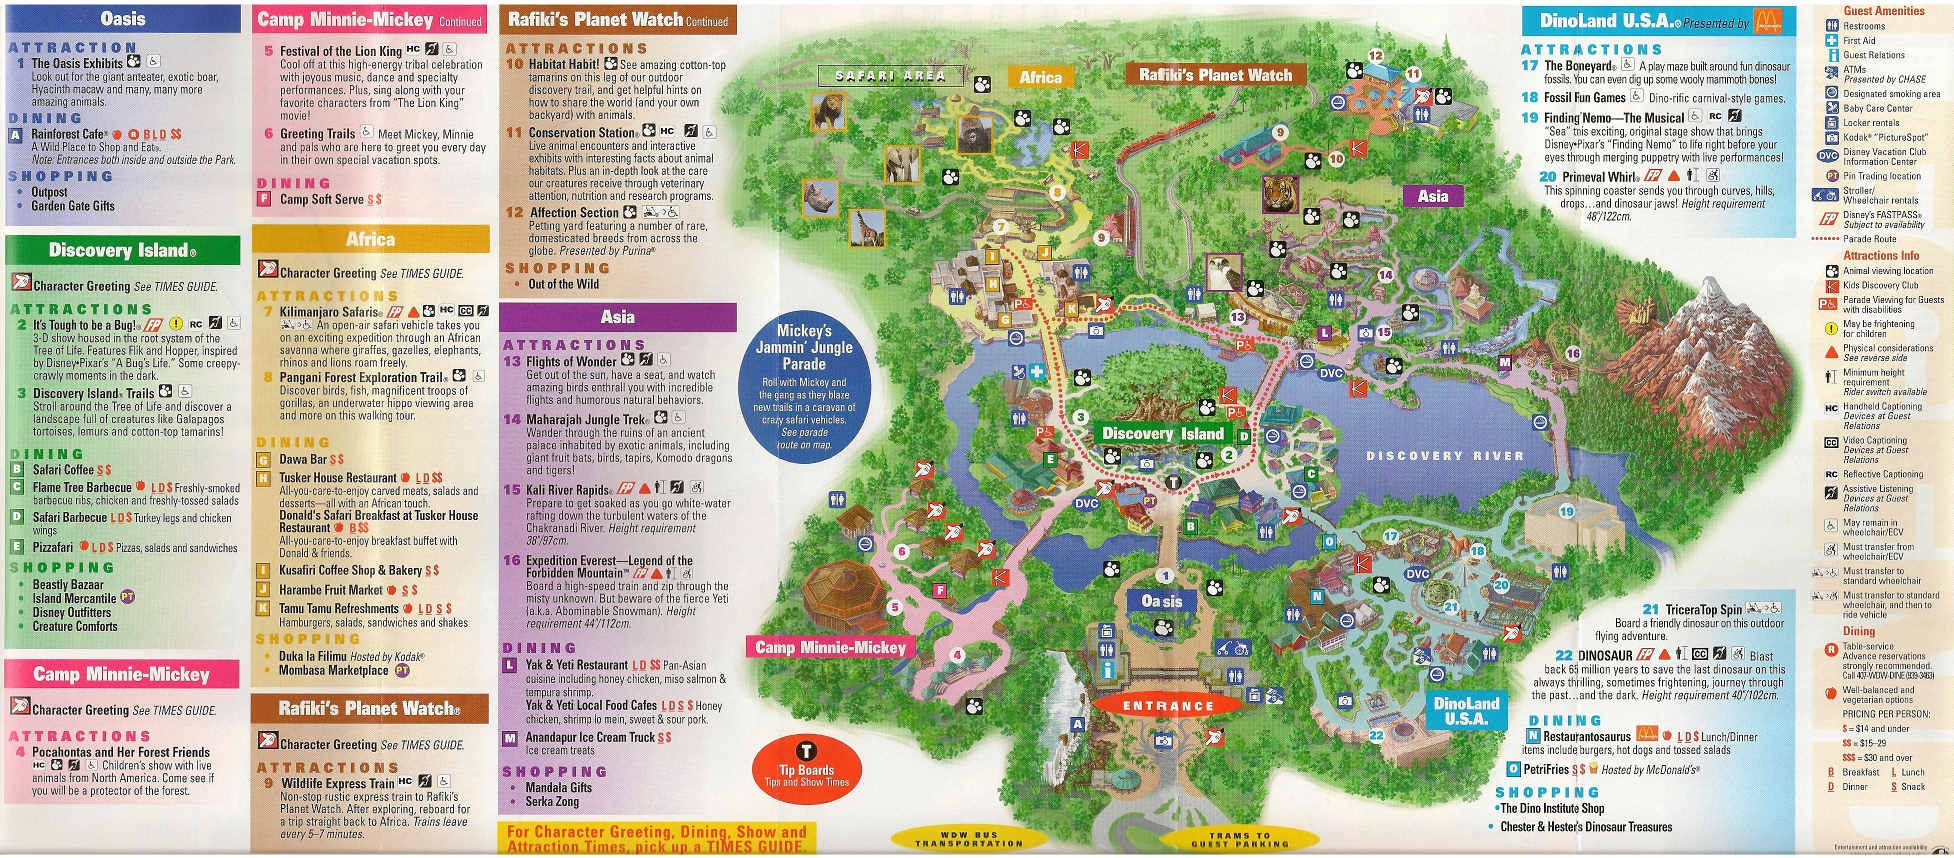 San Francisco Map Attractions Pdf%0A Discovery Island in Disney World Guide Map  Disney WOrld  u     mappery